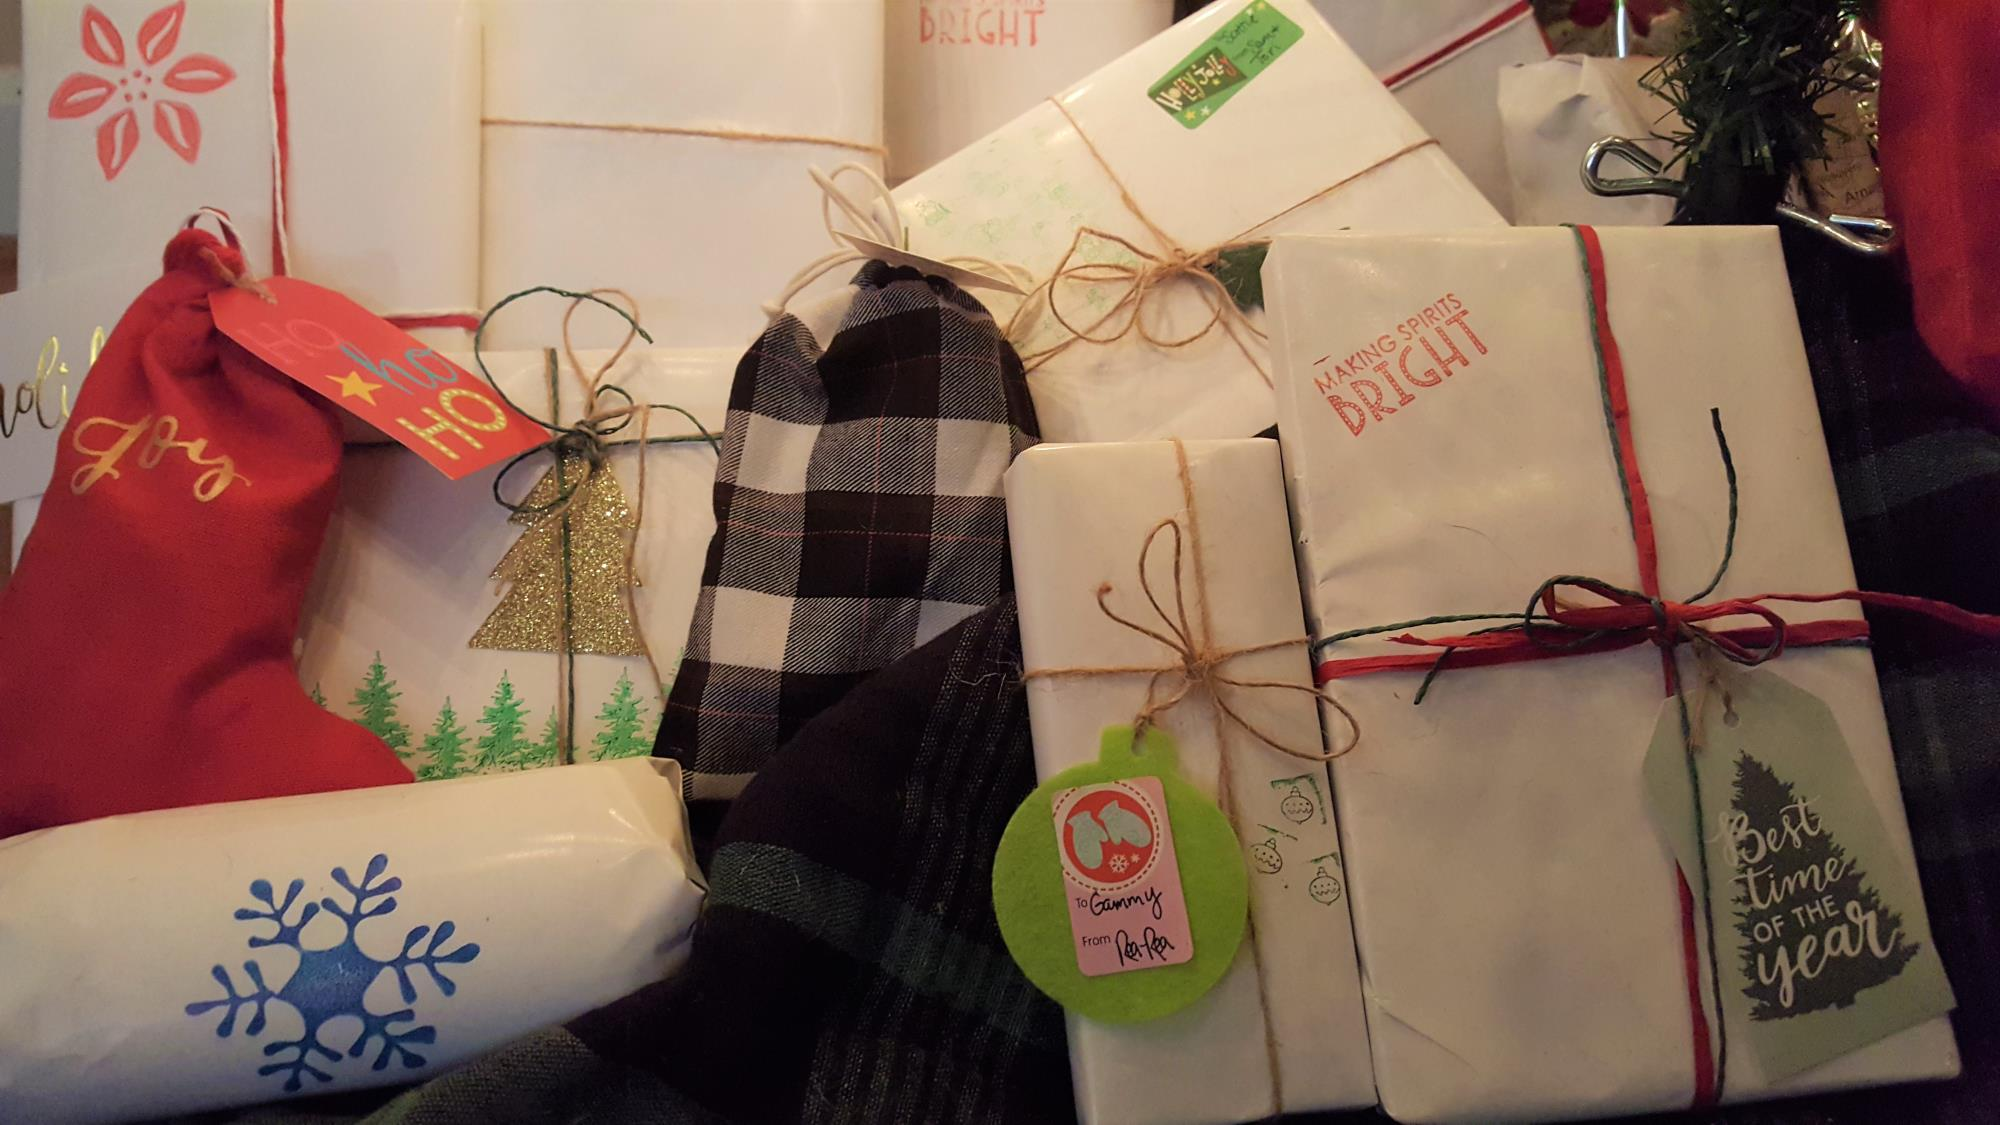 Gift--maps and bags